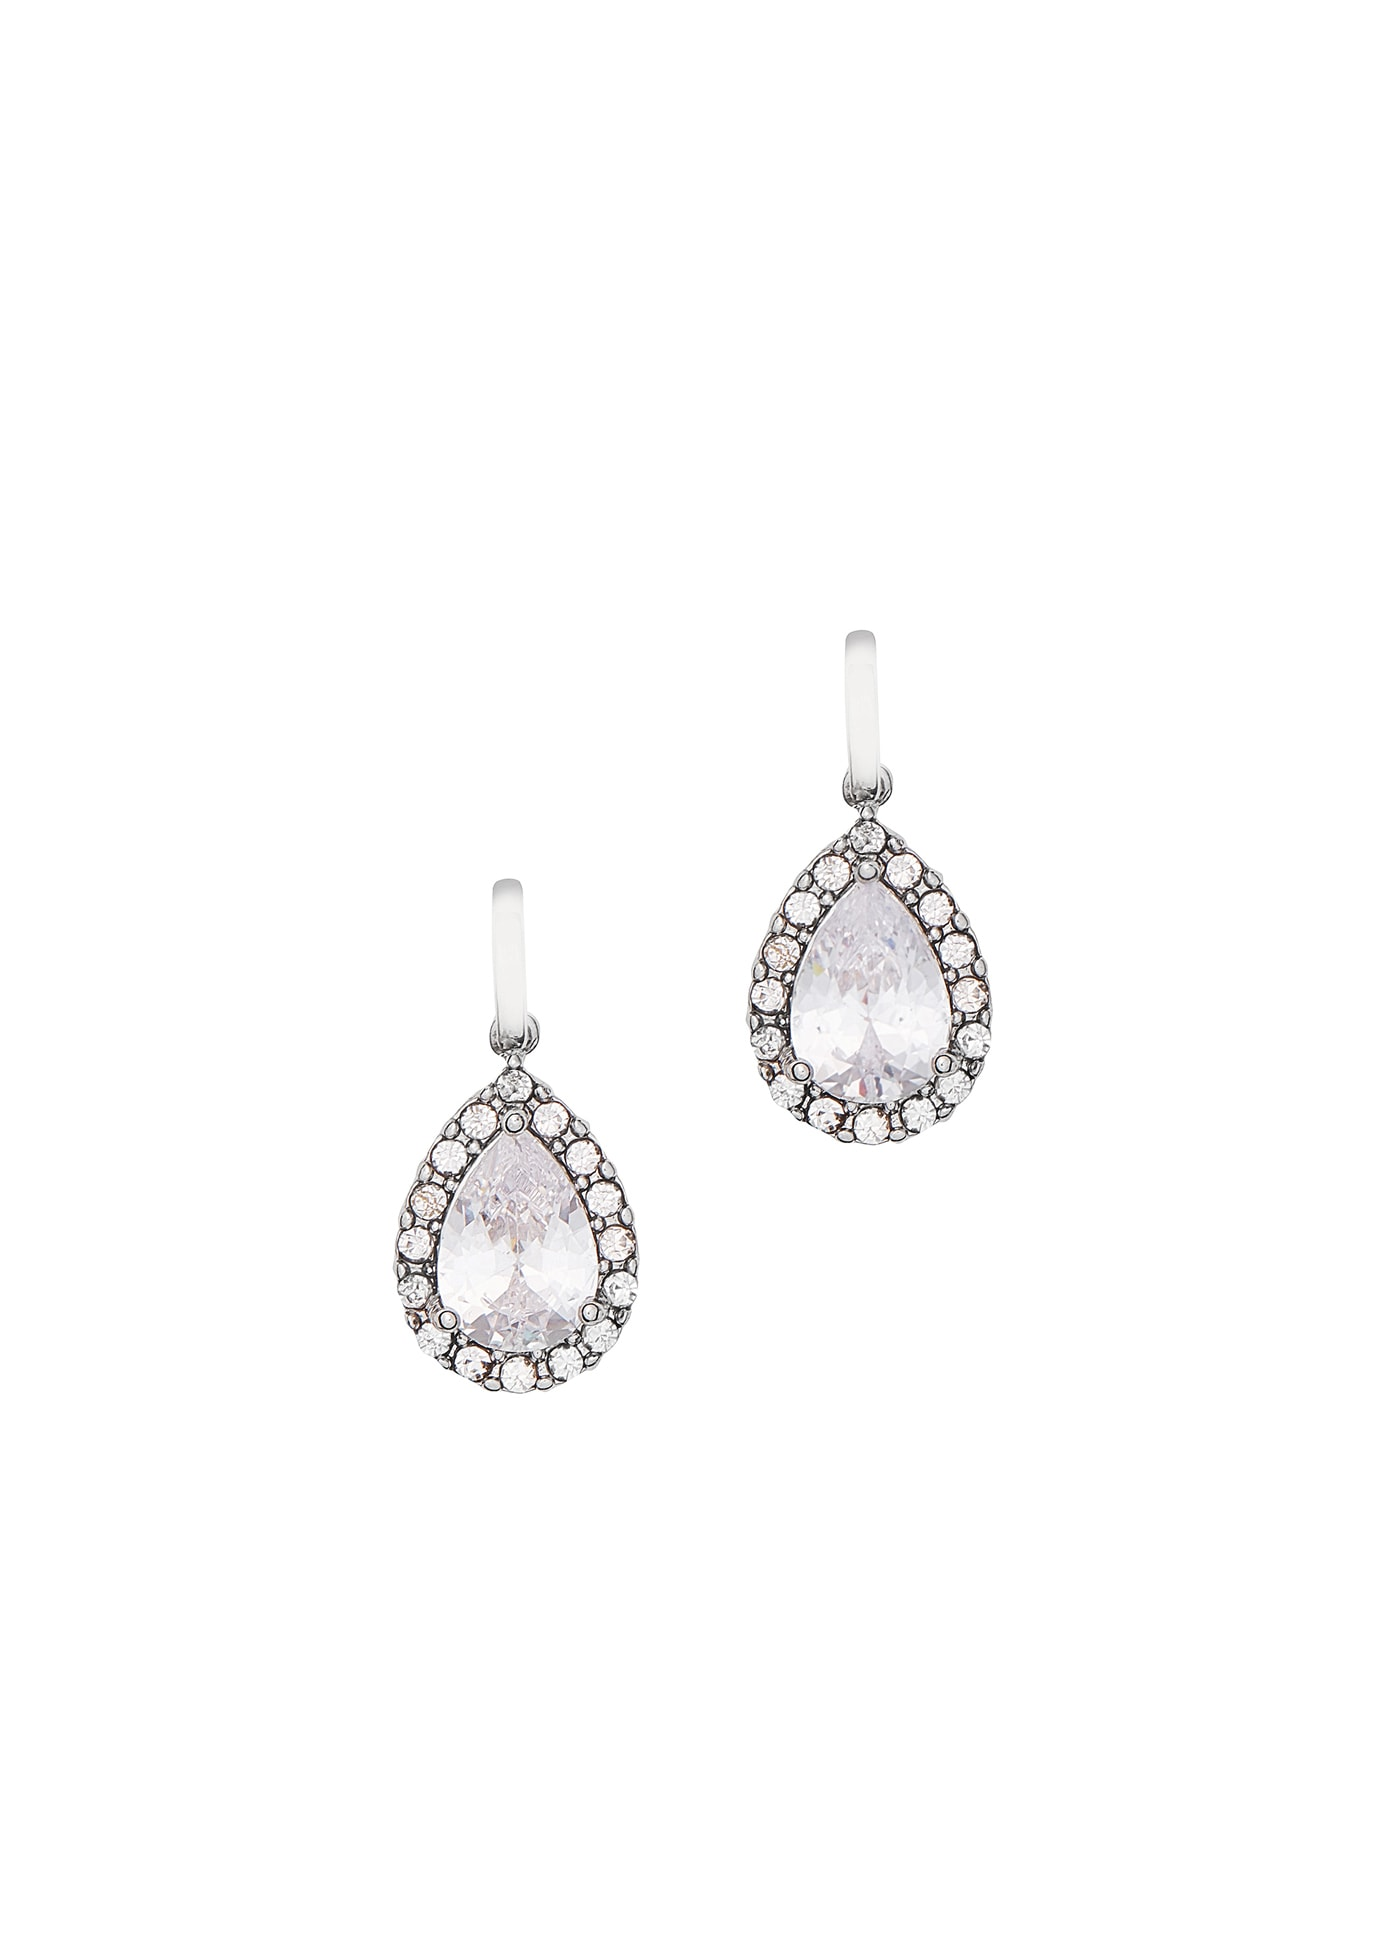 J000536 Cubic Zirconia Teardrop Earrings